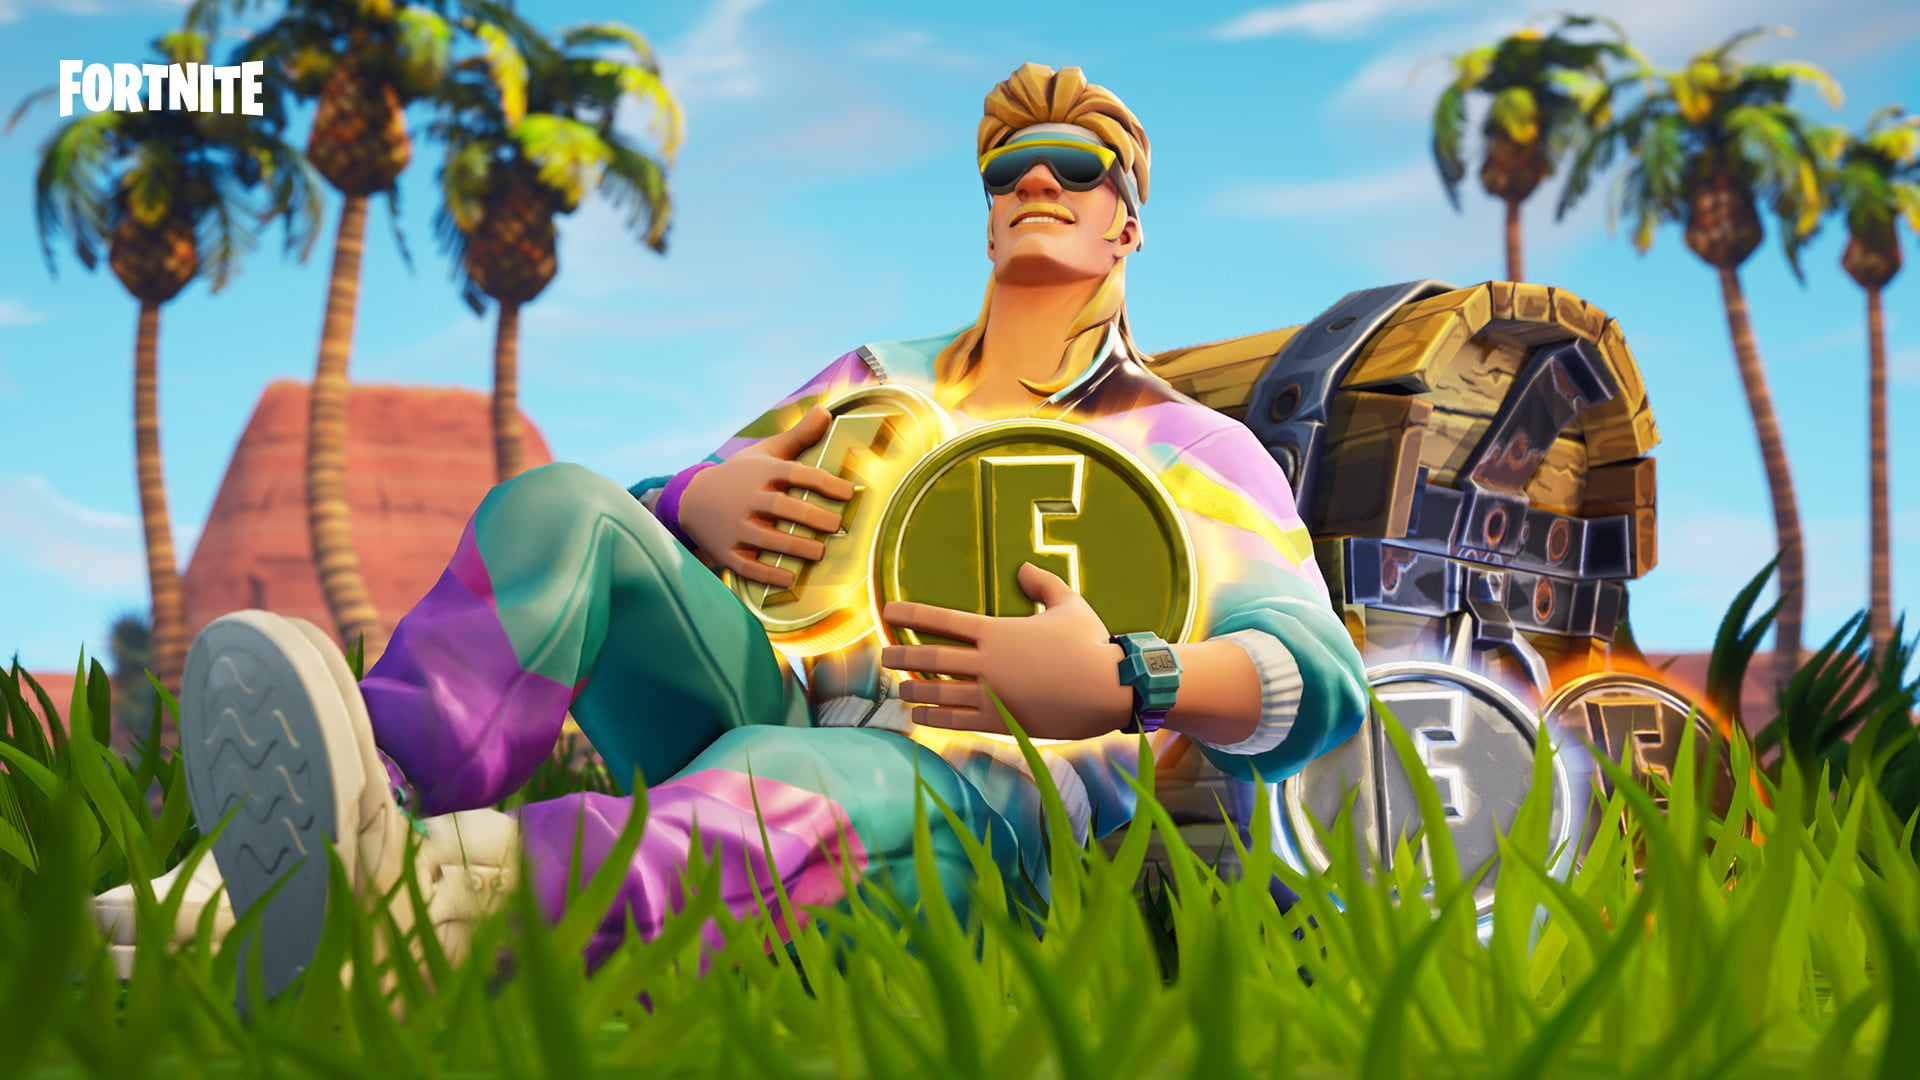 Fortnite Squad Gets 61 Kills In One Match Sets World Record